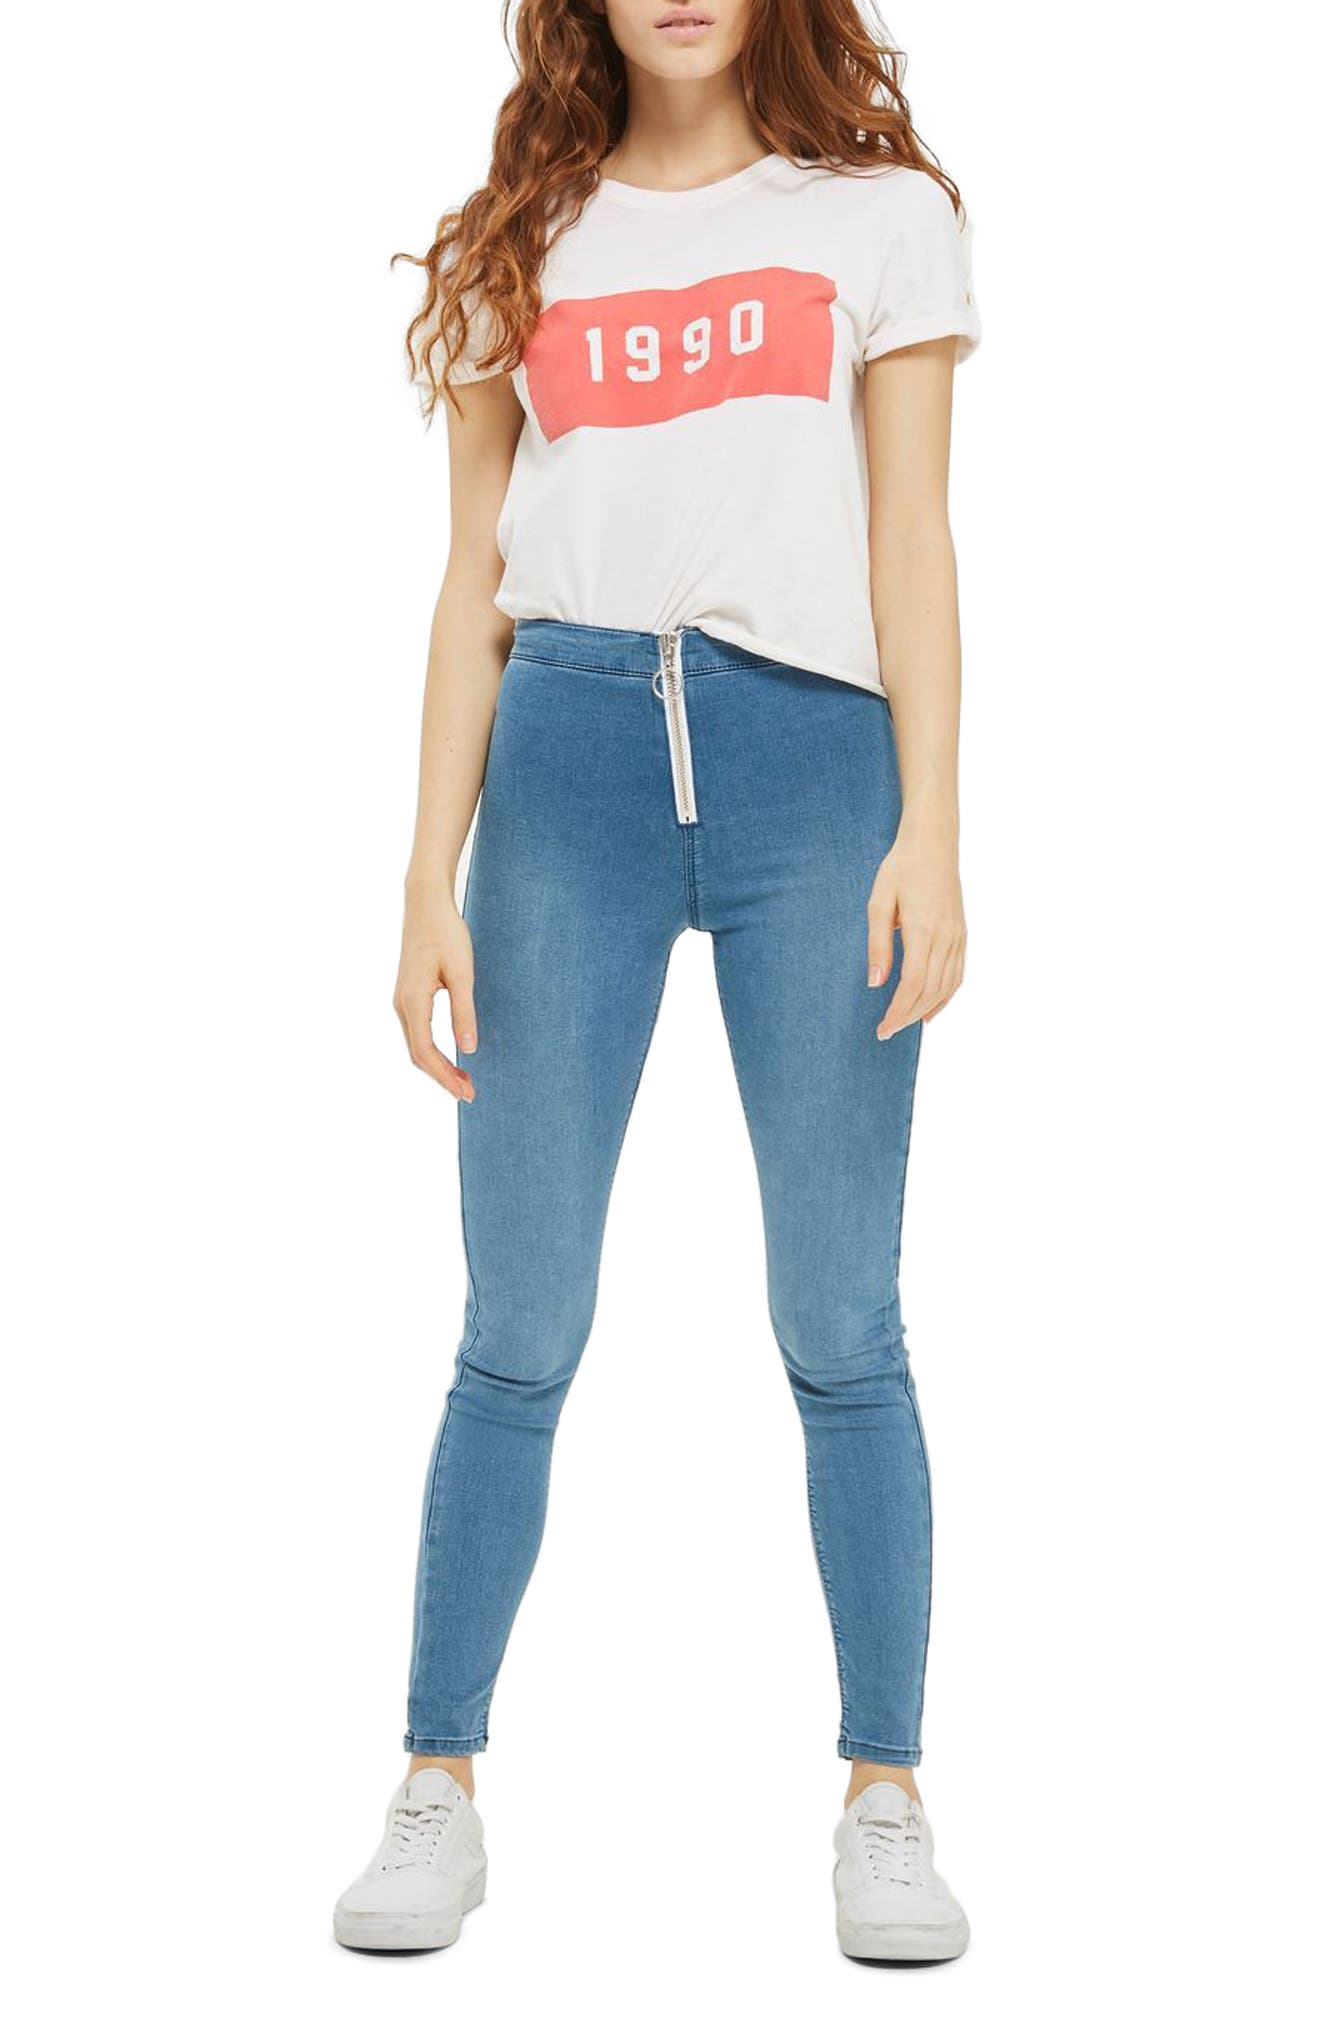 TOPSHOP Joni High Rise Zip Front Super Skinny Jeans